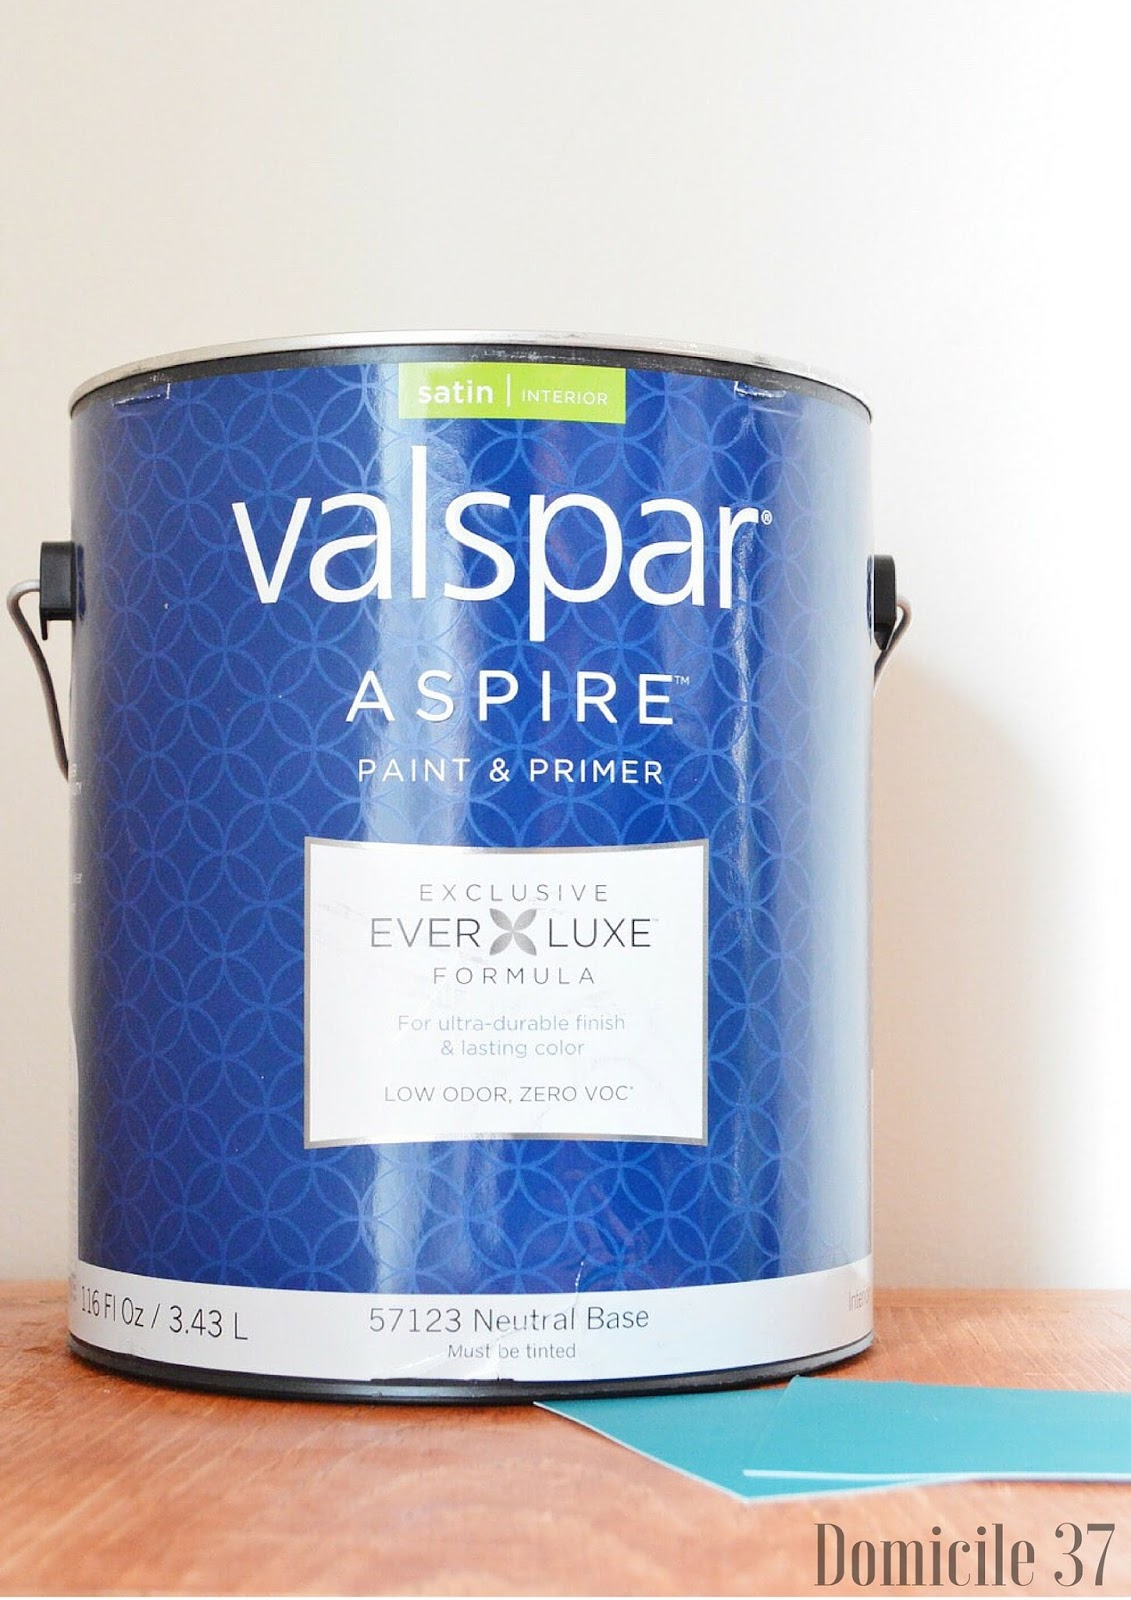 Hardware 31 Days of Color Campaign, The Paint Studio, Valspar Planet Earth Paint, Bathroom makeover,